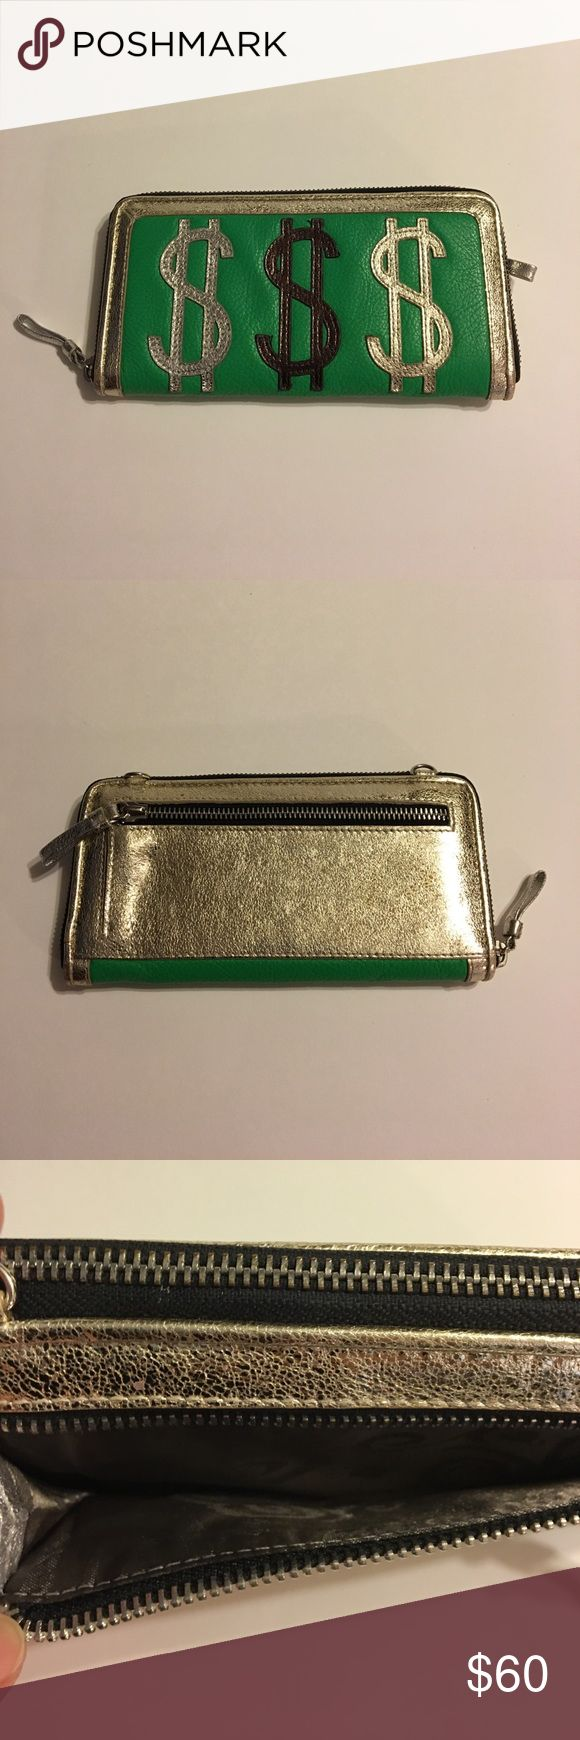 BRIGHTON WALLET Excellent condition like new mad money 💰 green and silver color soft leather missing the strap sorry 😐. BGBG-5011 Brighton Bags Wallets